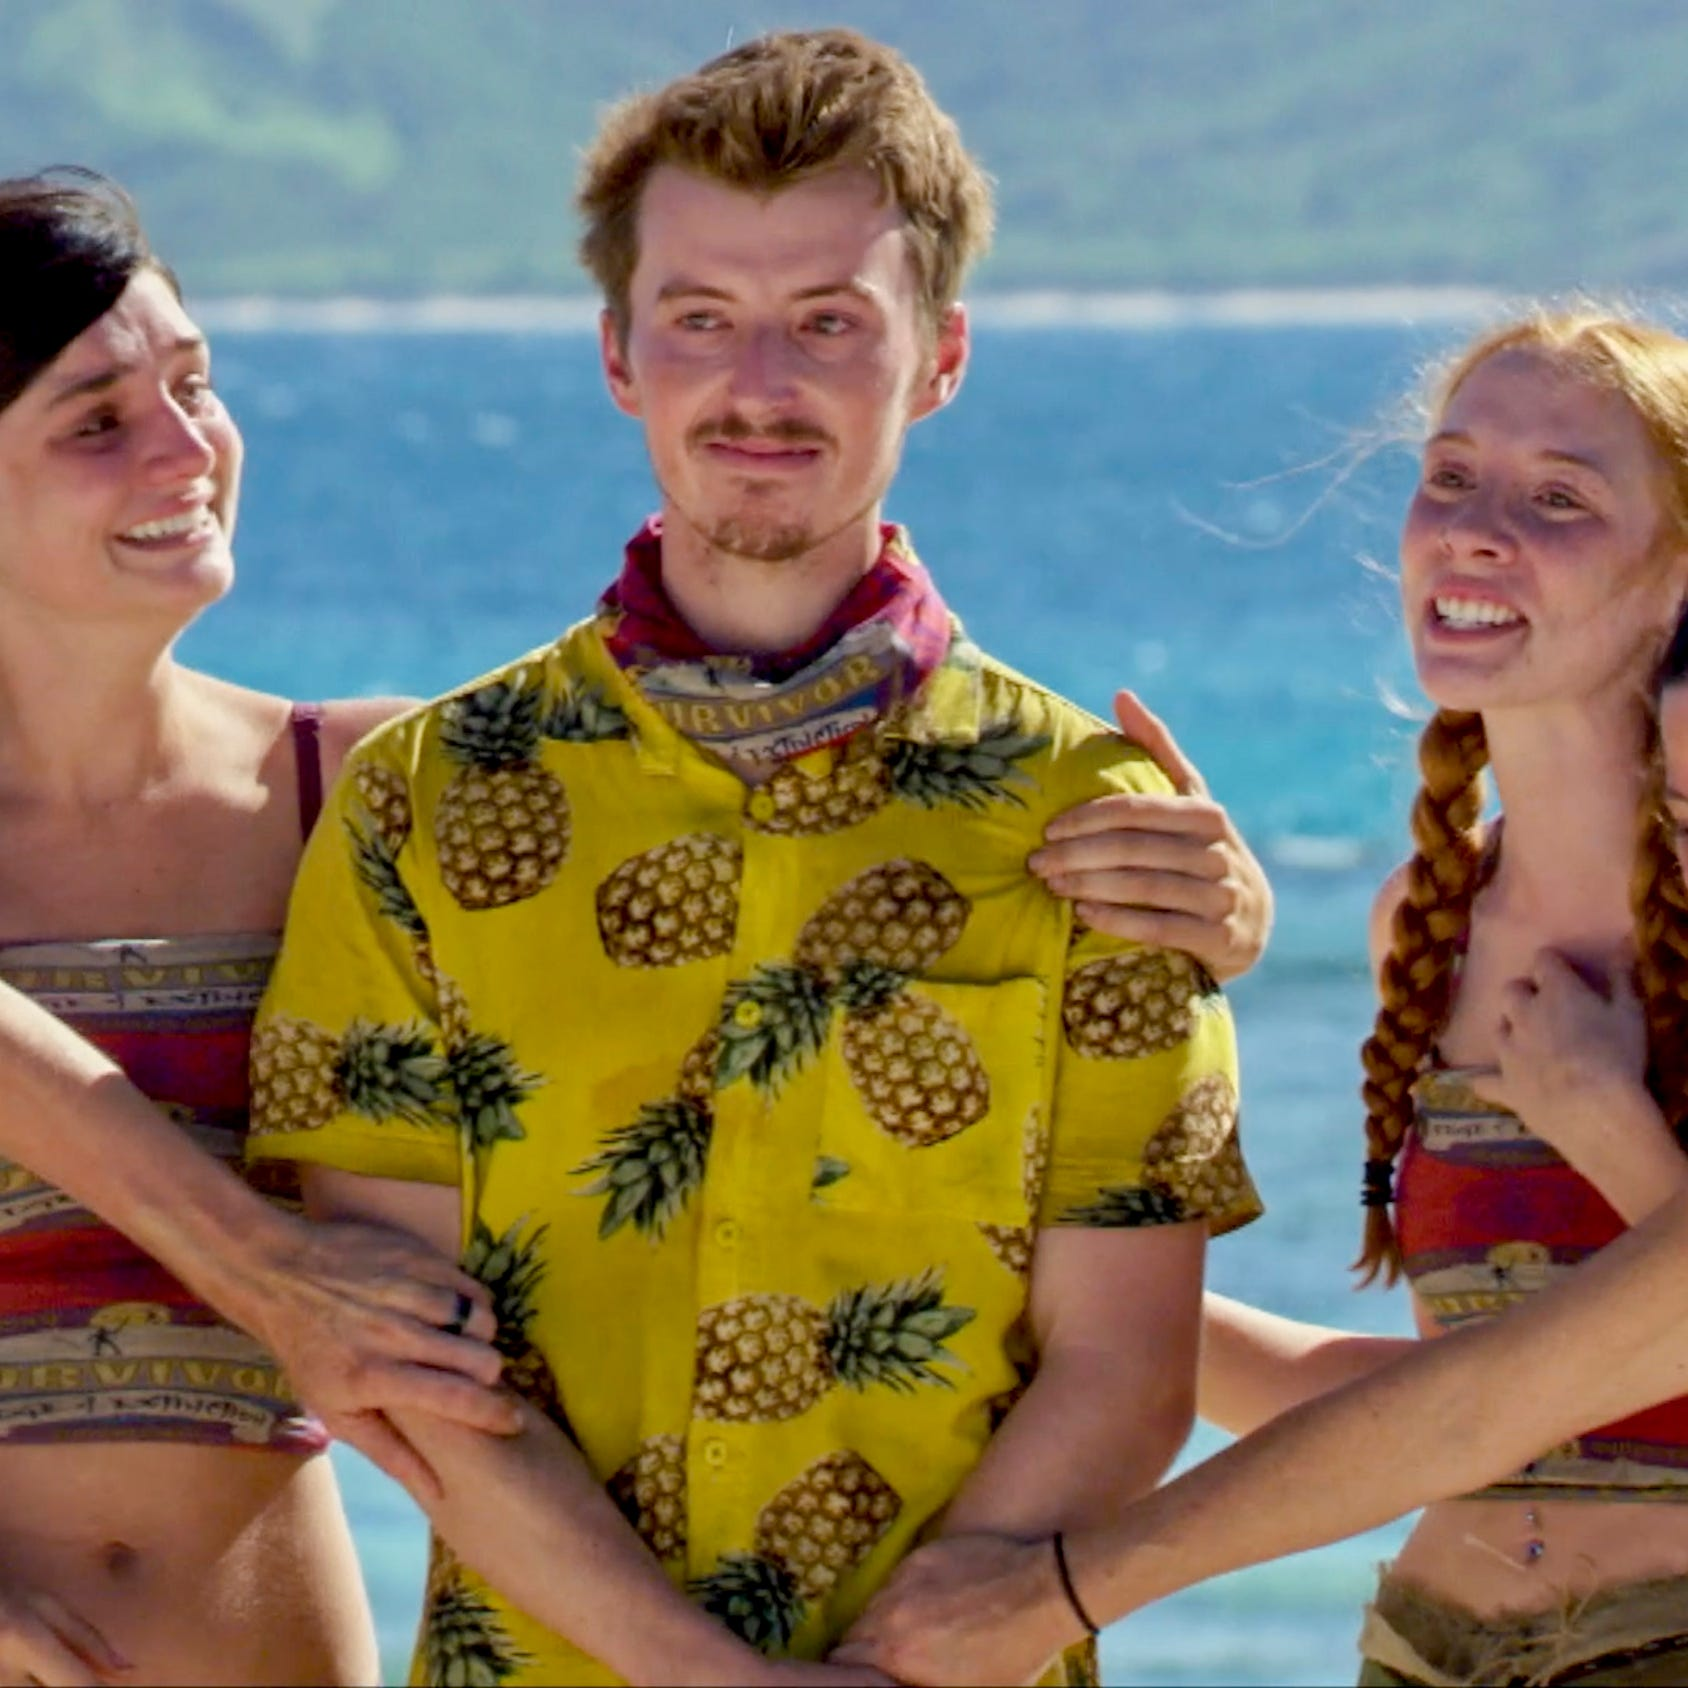 How Gavin Whitson used Aurora McCreary's advantage for major blindside on 'Survivor'